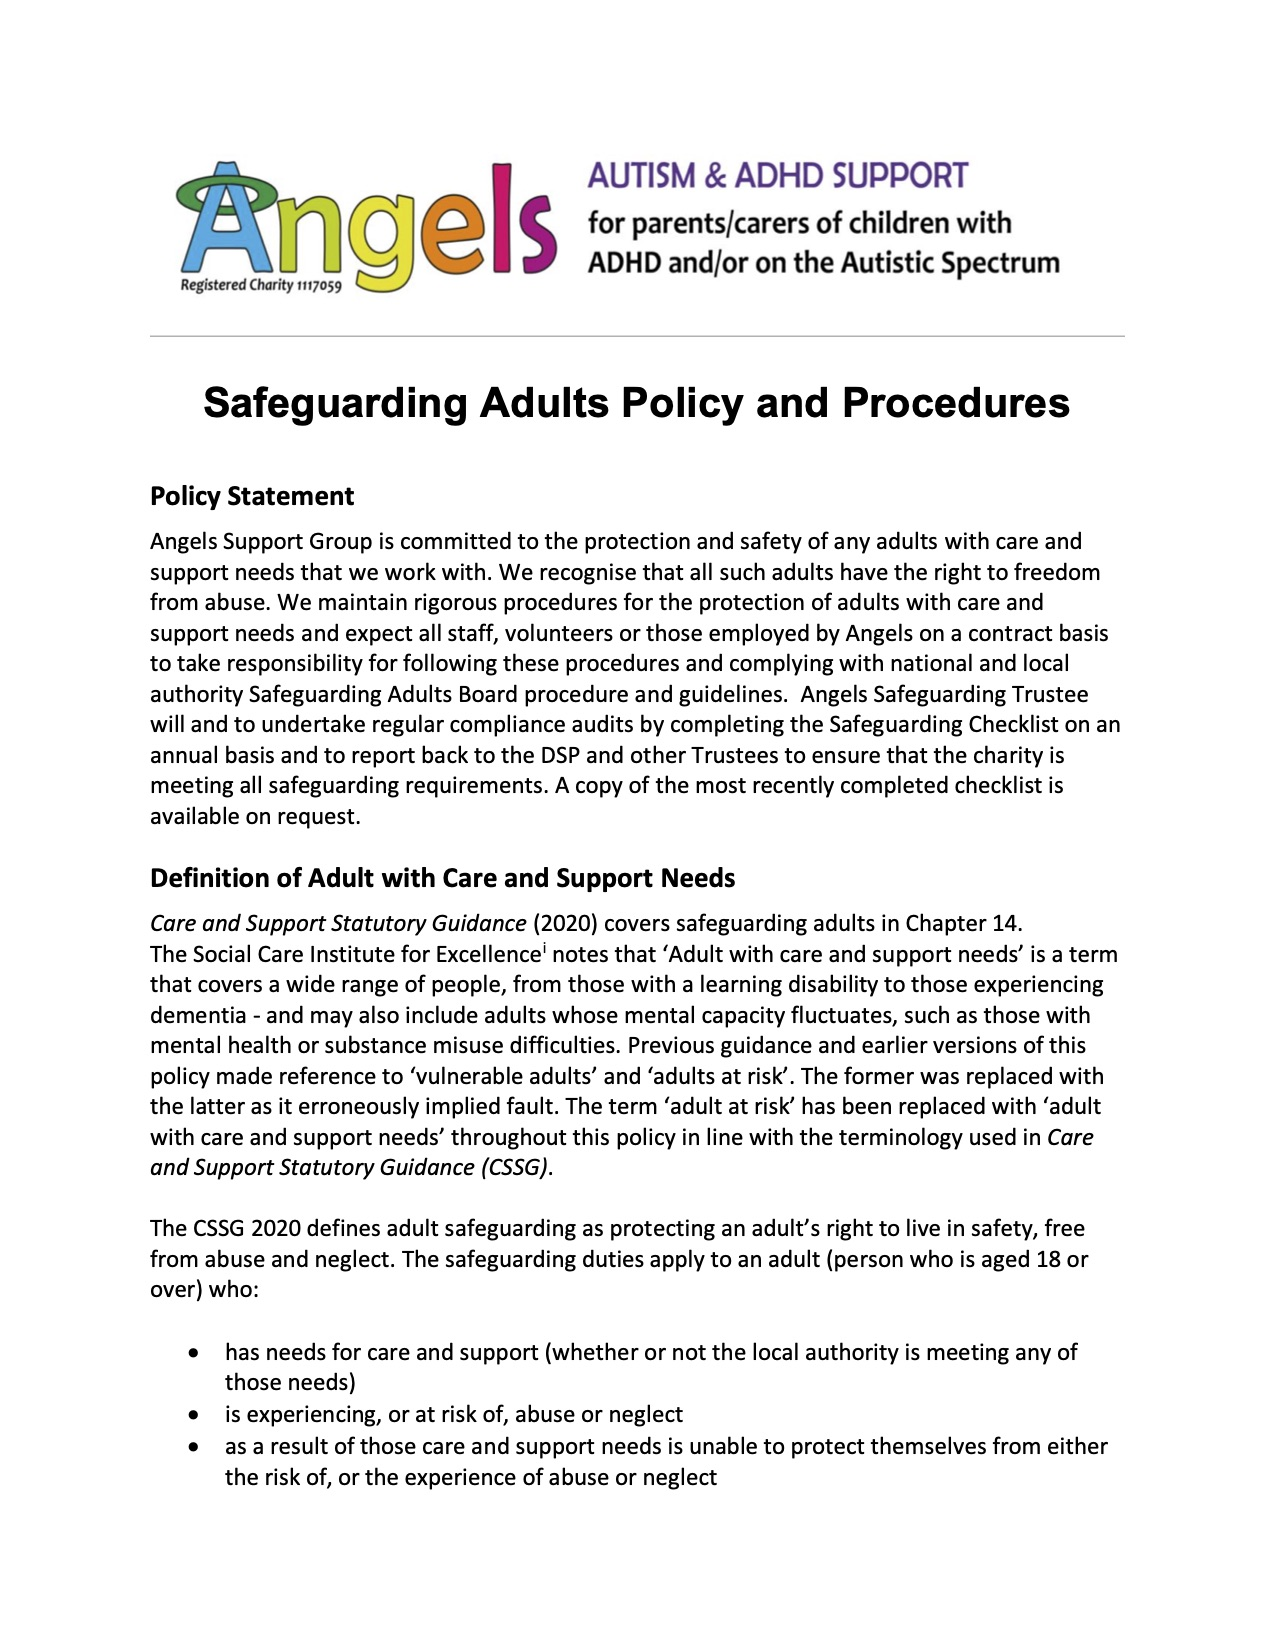 Safeguarding Vulnerable Adults Policy